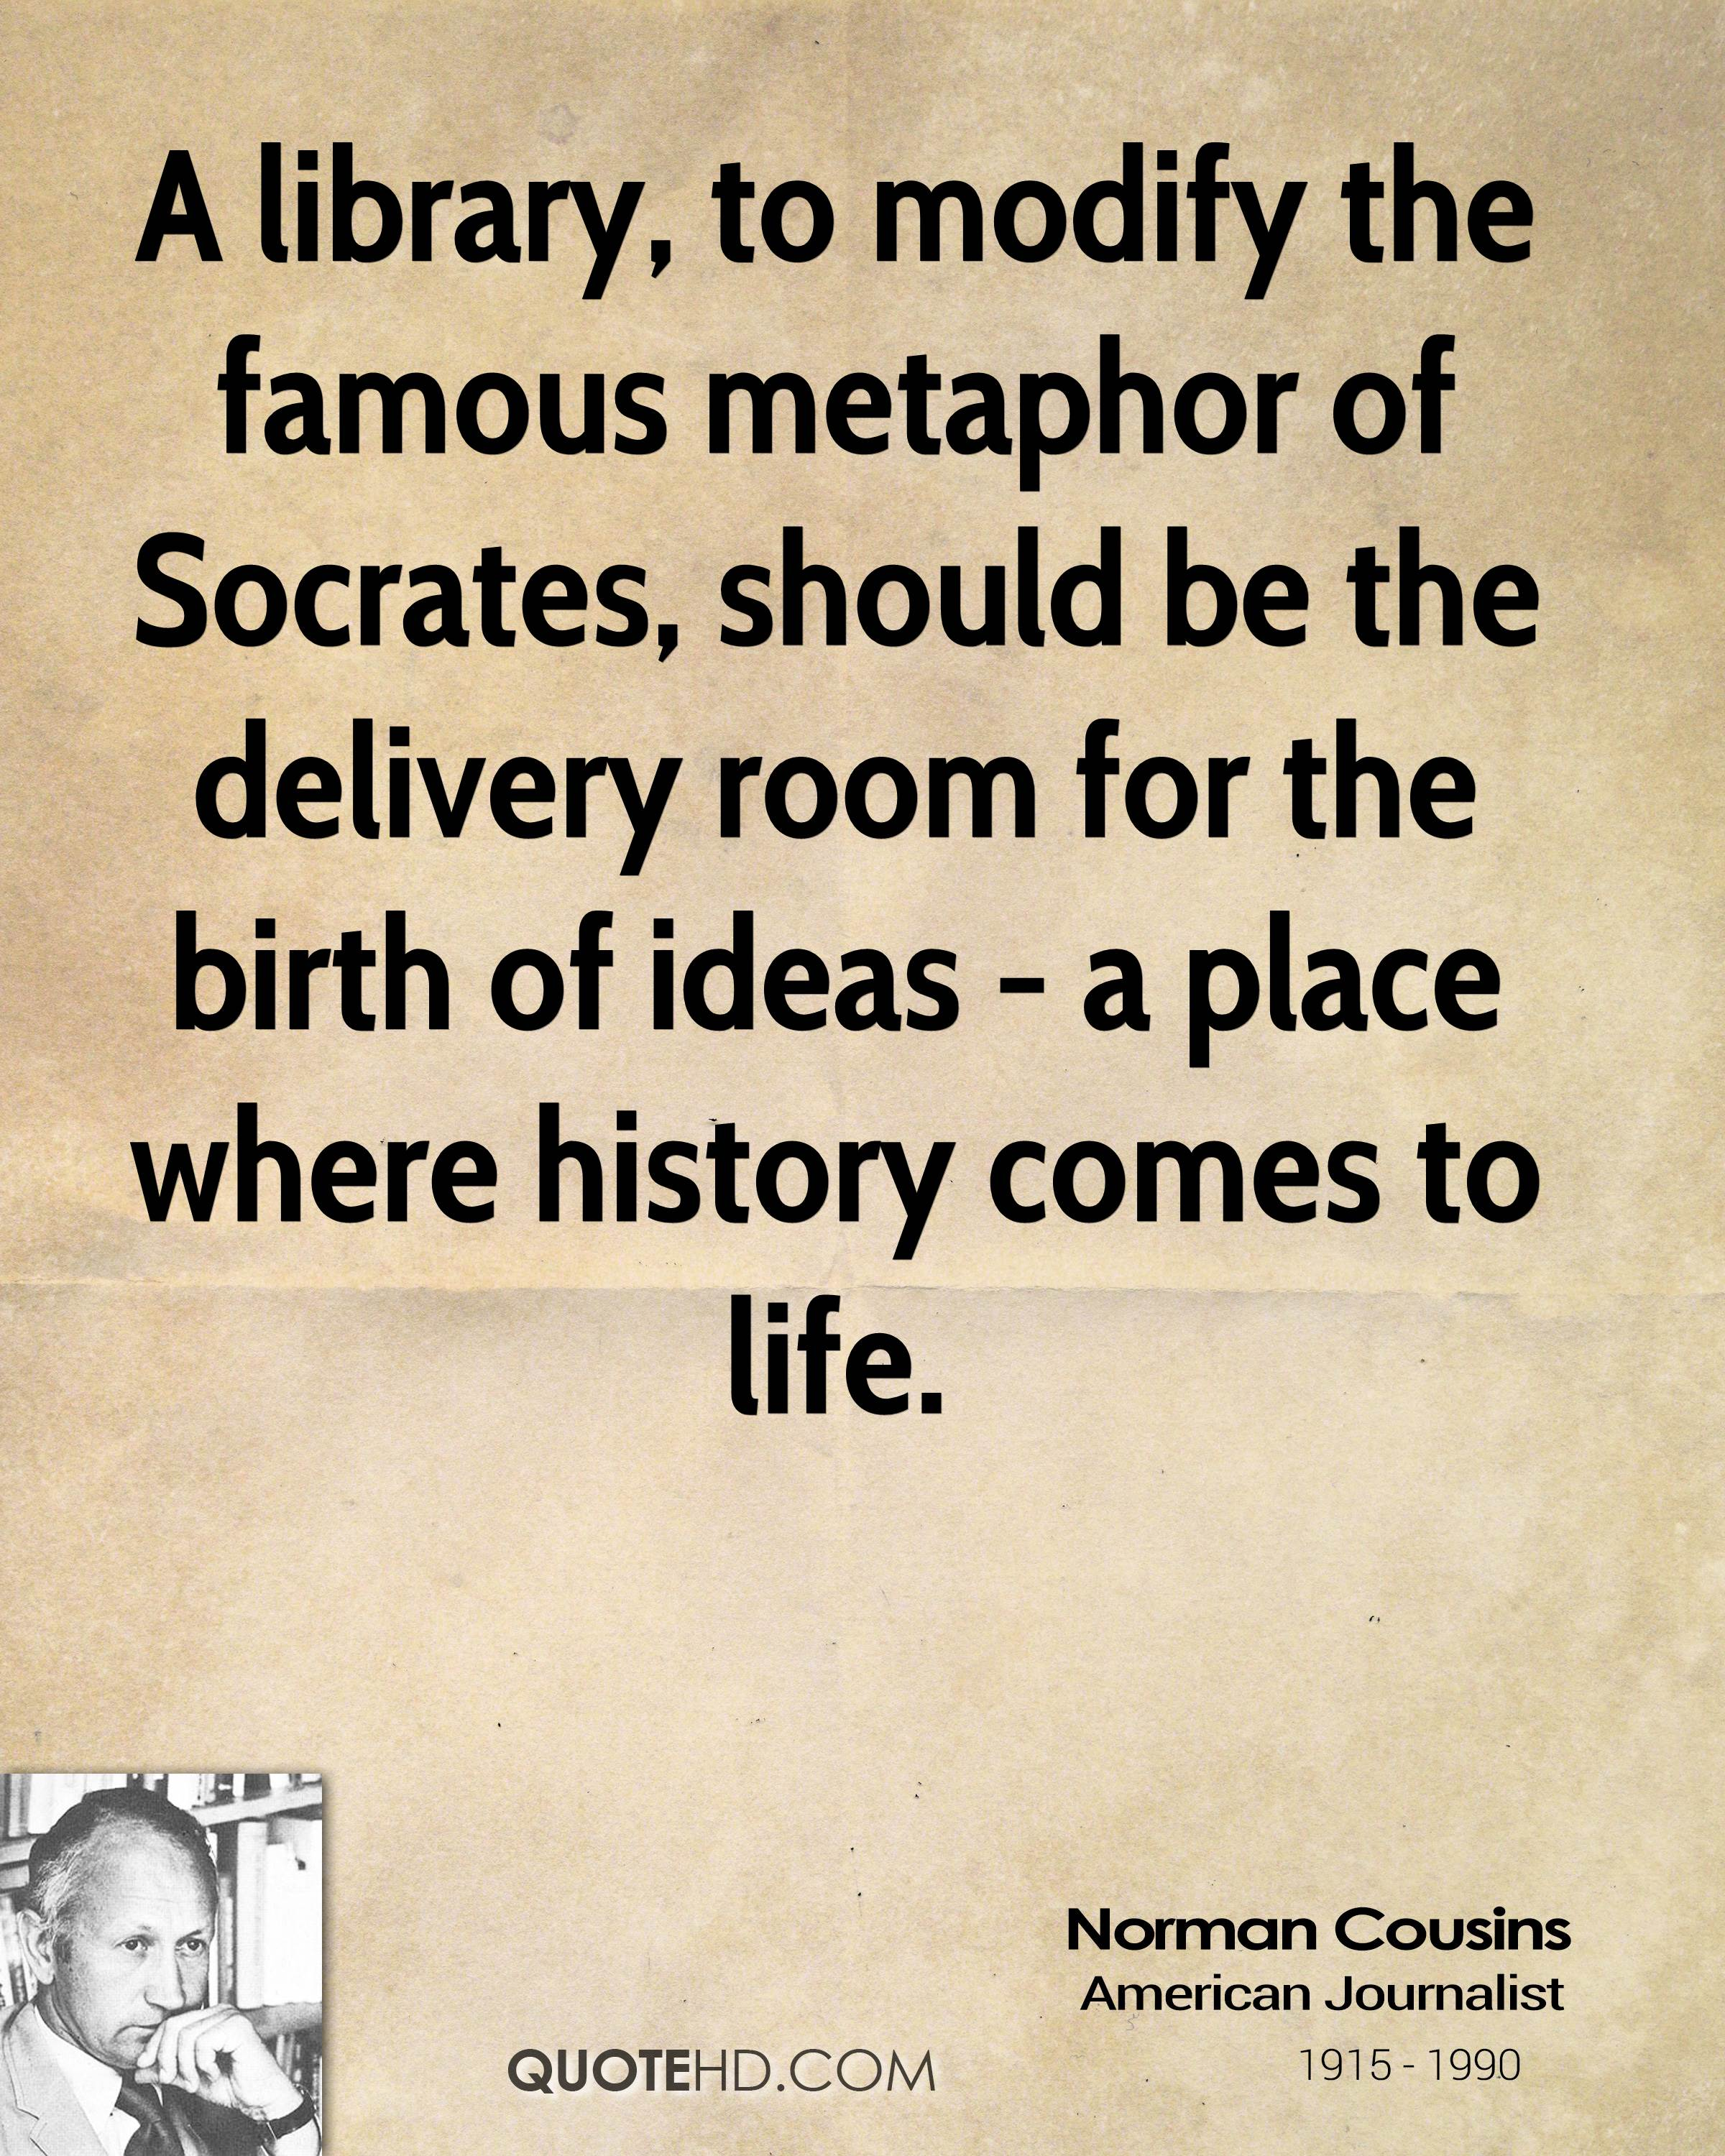 A library, to modify the famous metaphor of Socrates, should be the delivery room for the birth of ideas - a place where history comes to life.